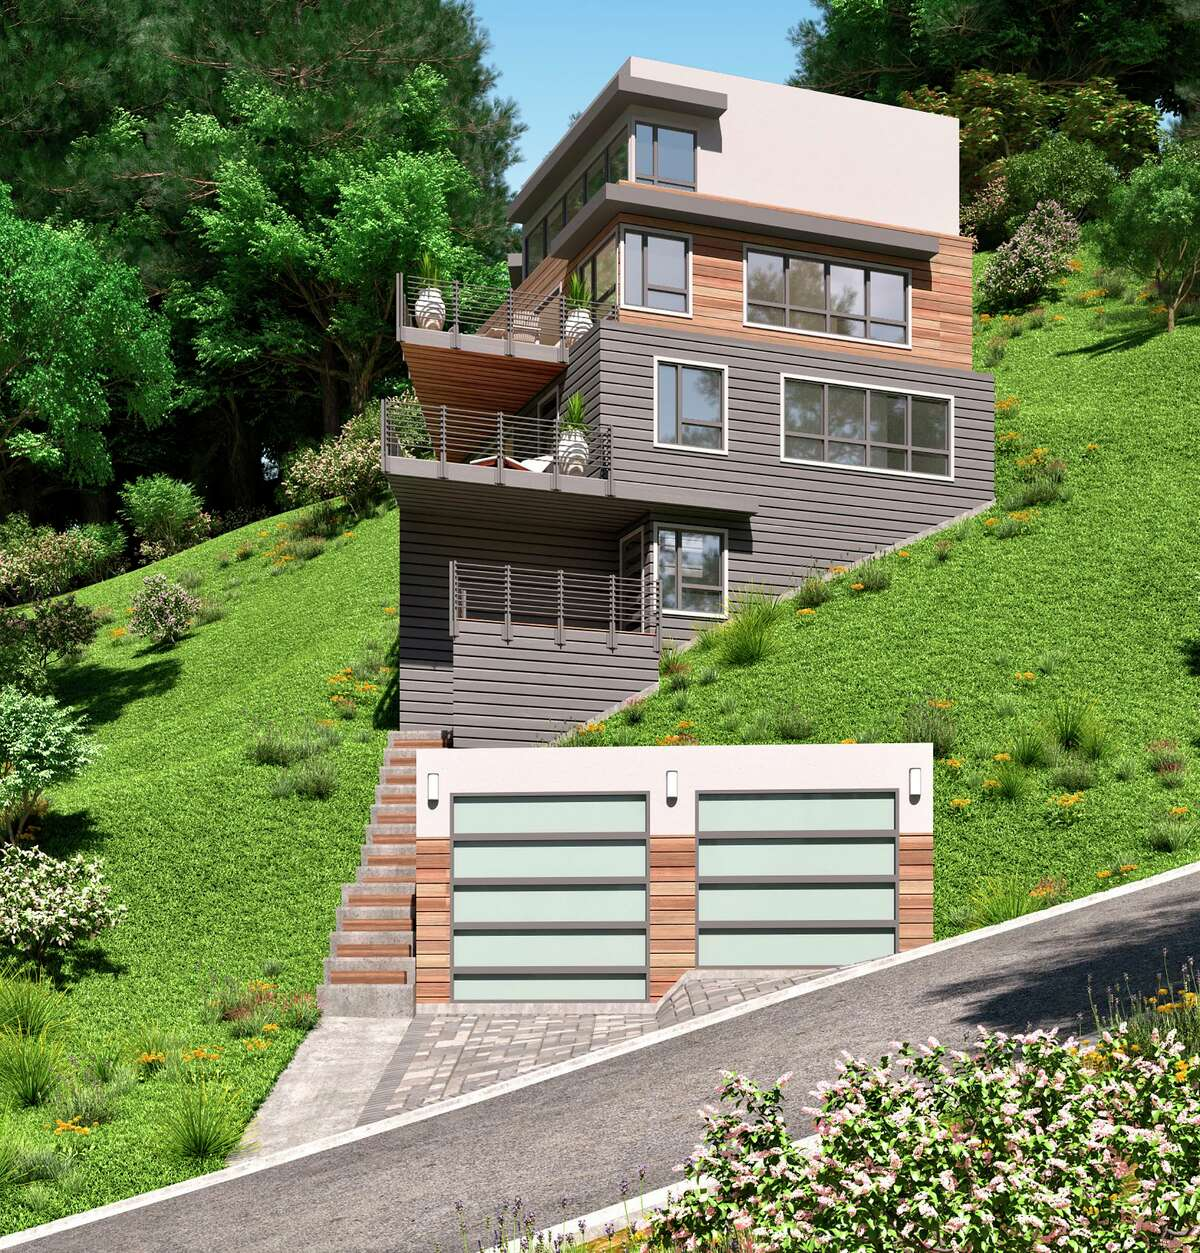 The land and approved architectural plans for the four-bedroom, four-bathroom contemporary at 6881 Sobrante Road in Oakland are available for $1.795 million.